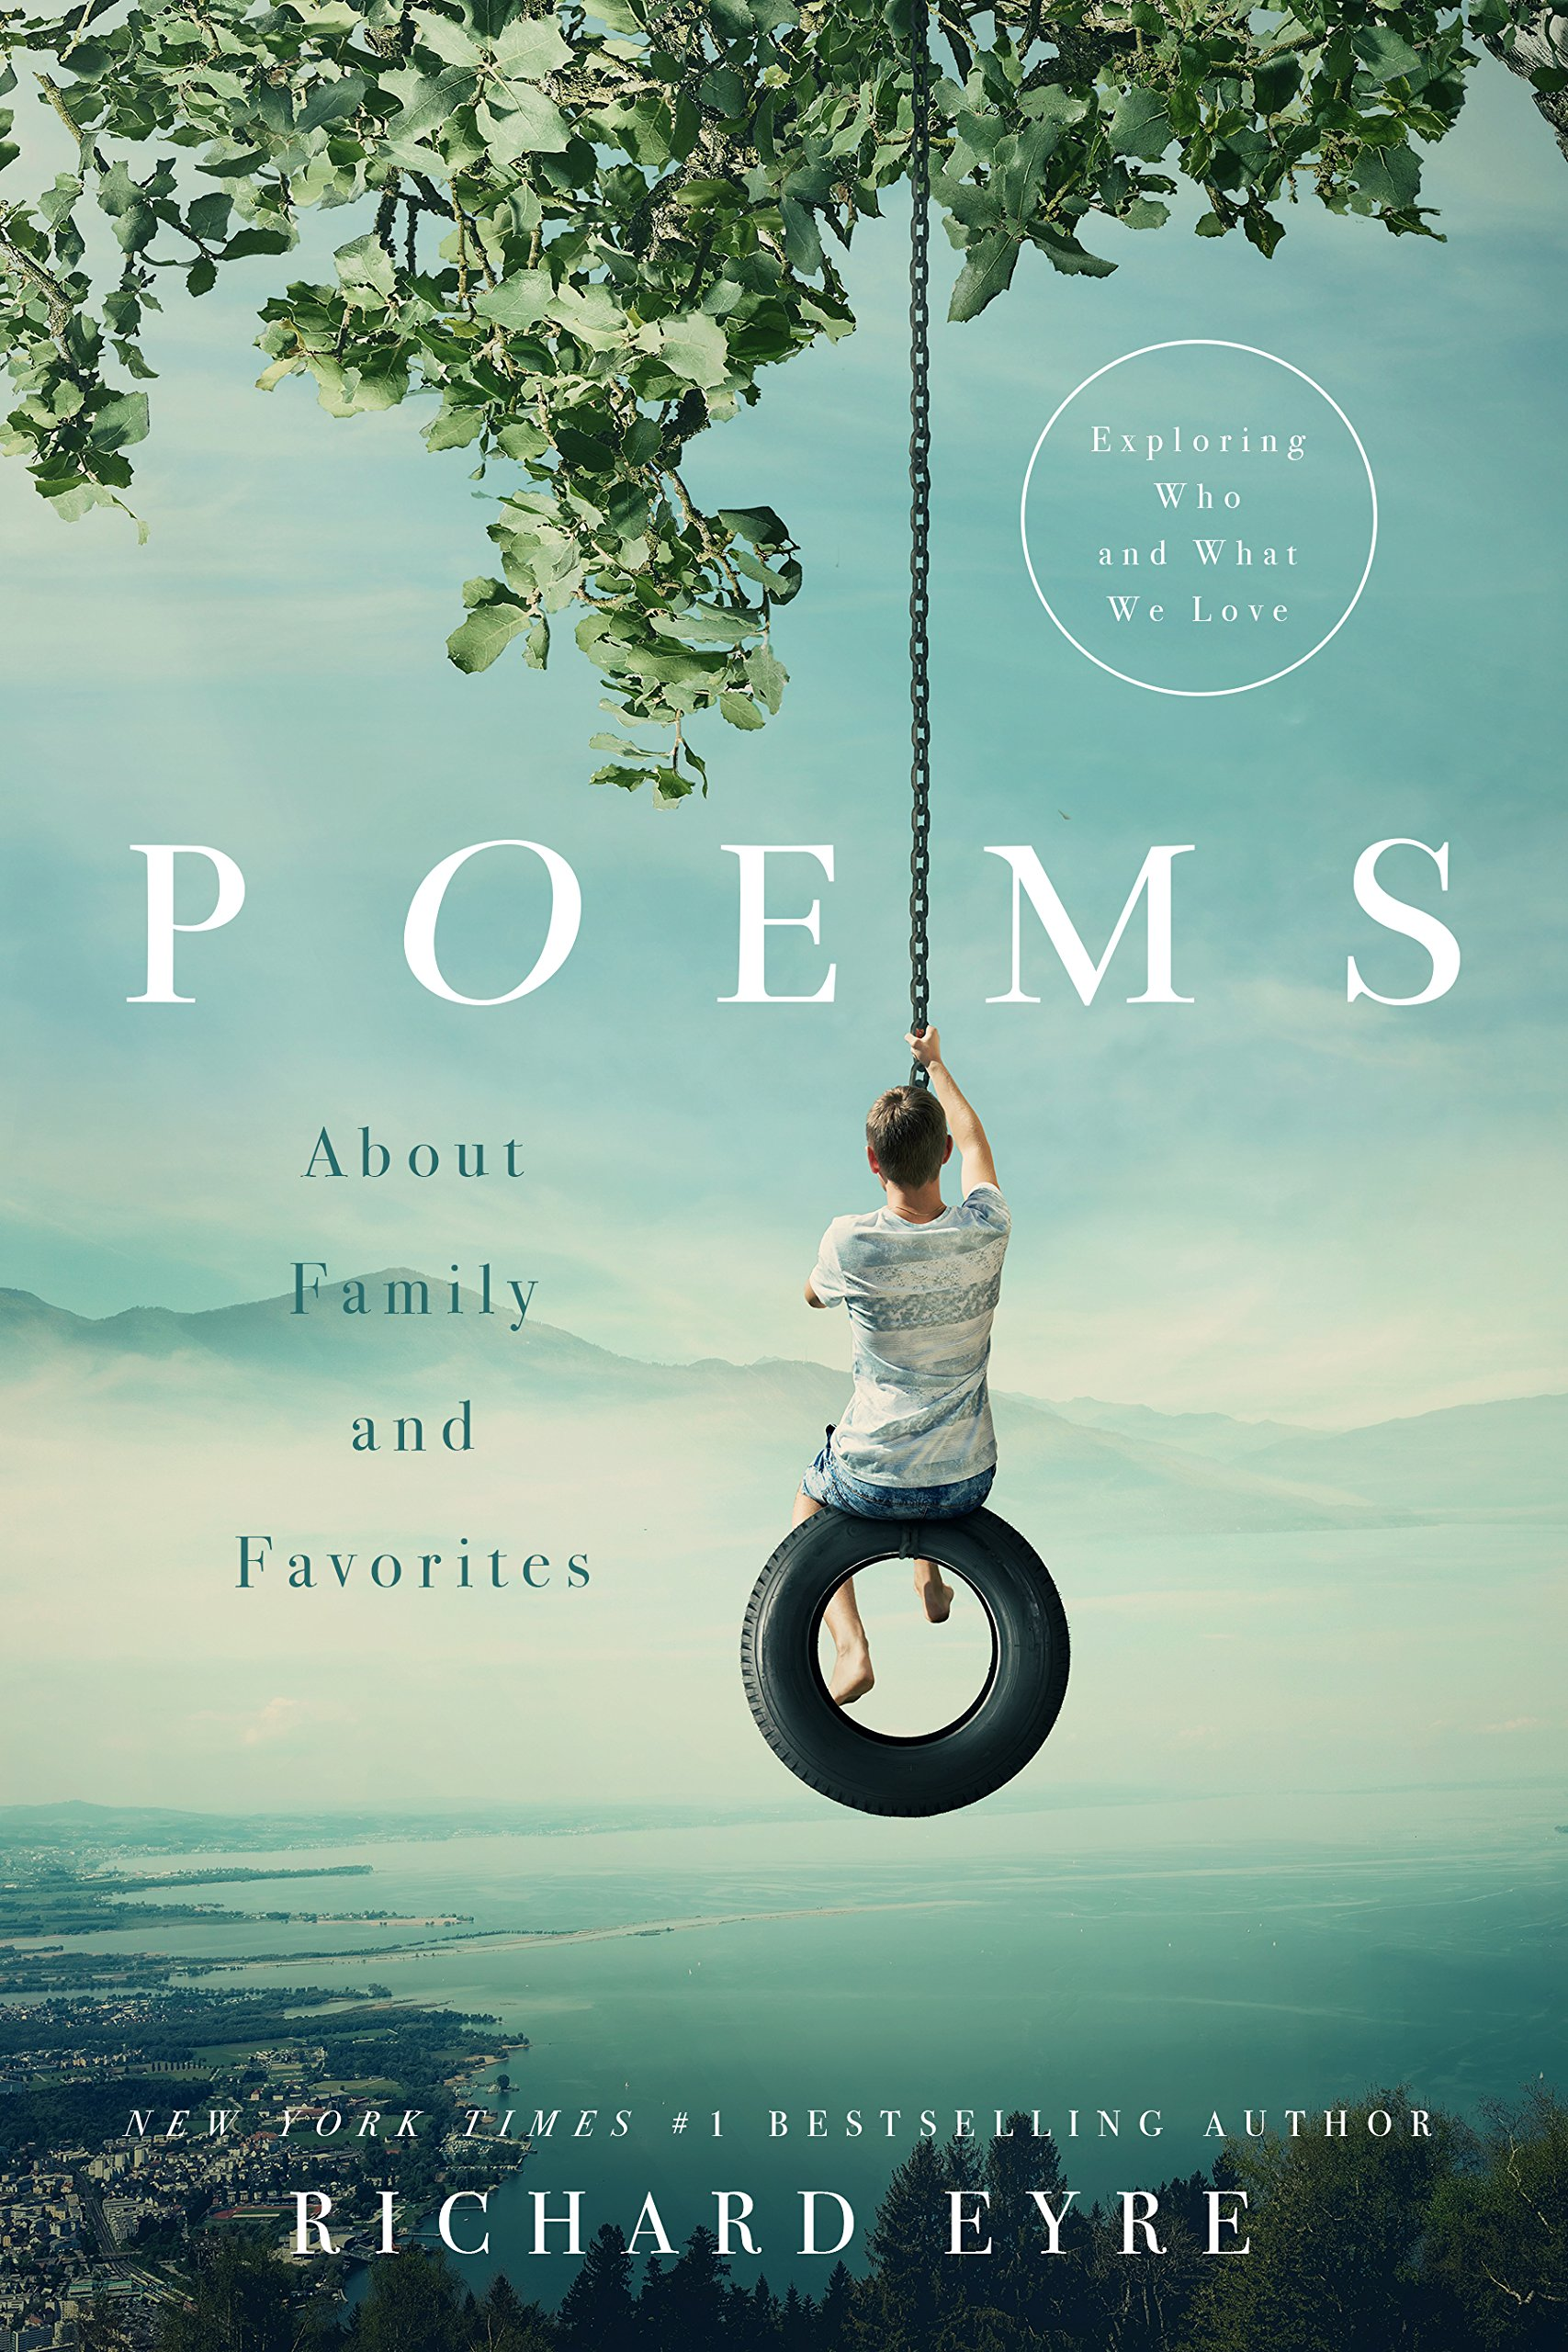 Poems About Family and Favorites: Exploring Who and What We Love